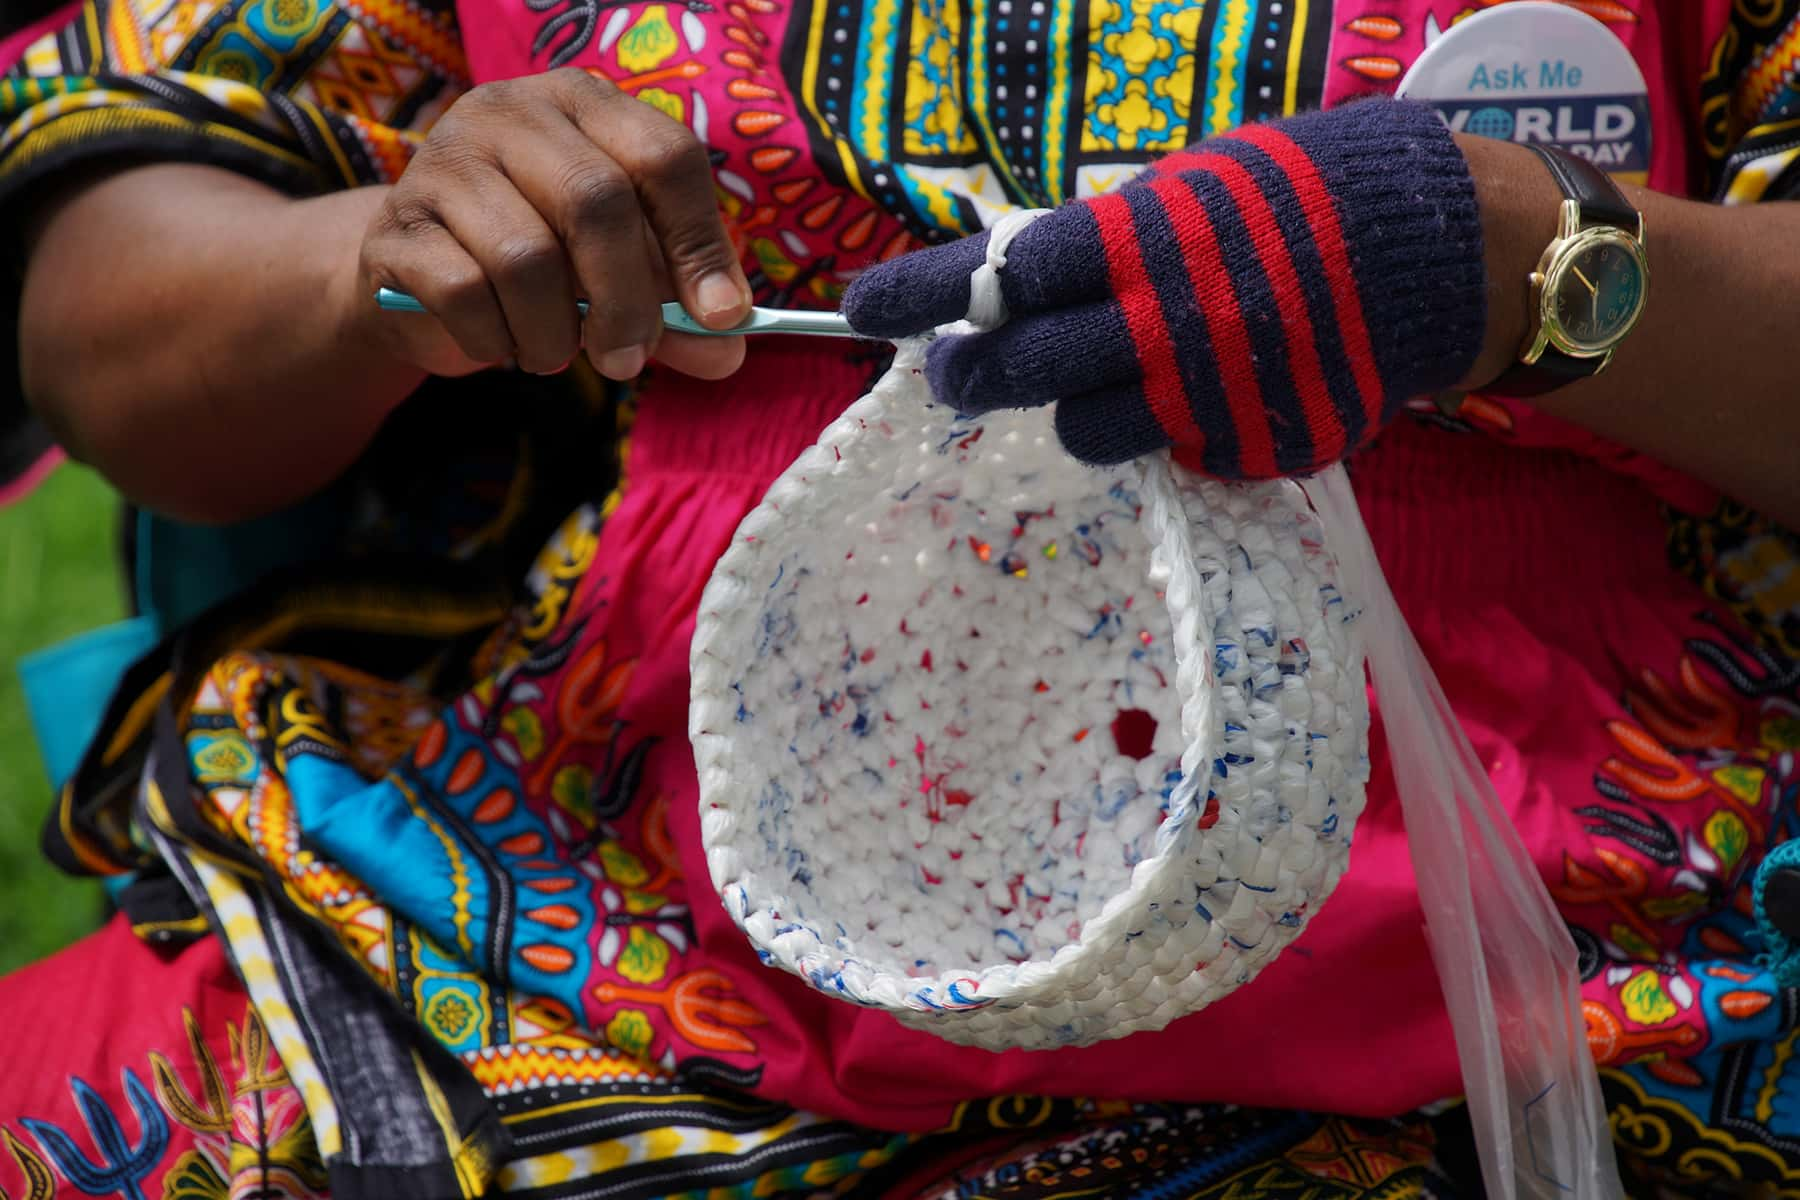 Local Refugee Women Crochet Plastic Bags Into Craft Items And Earn